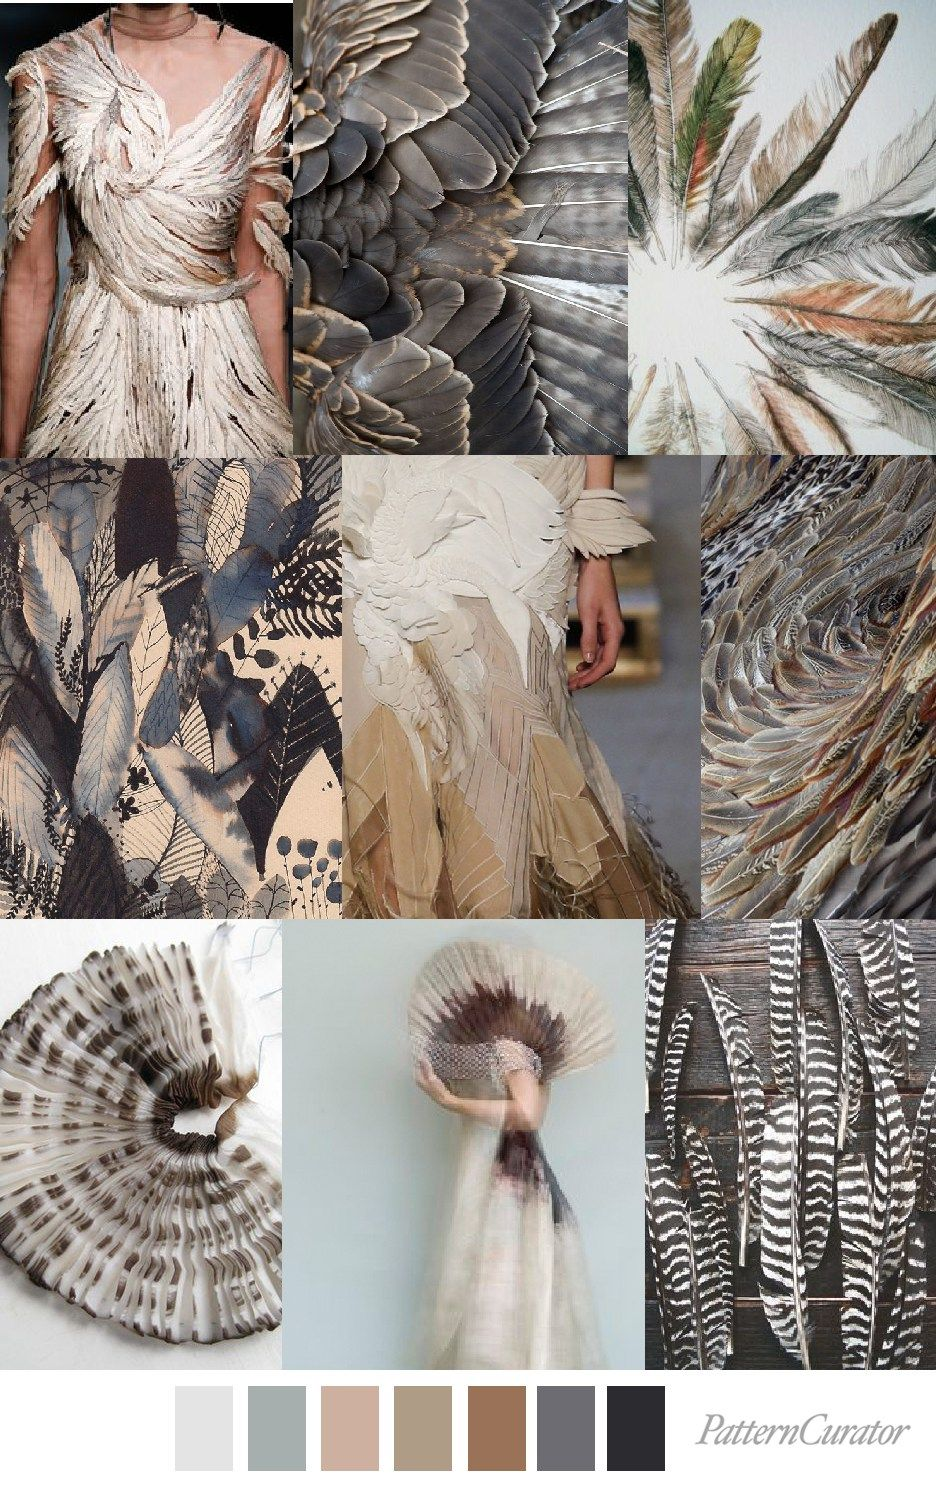 RUFFLE FEATHERS_SITE #collageboard